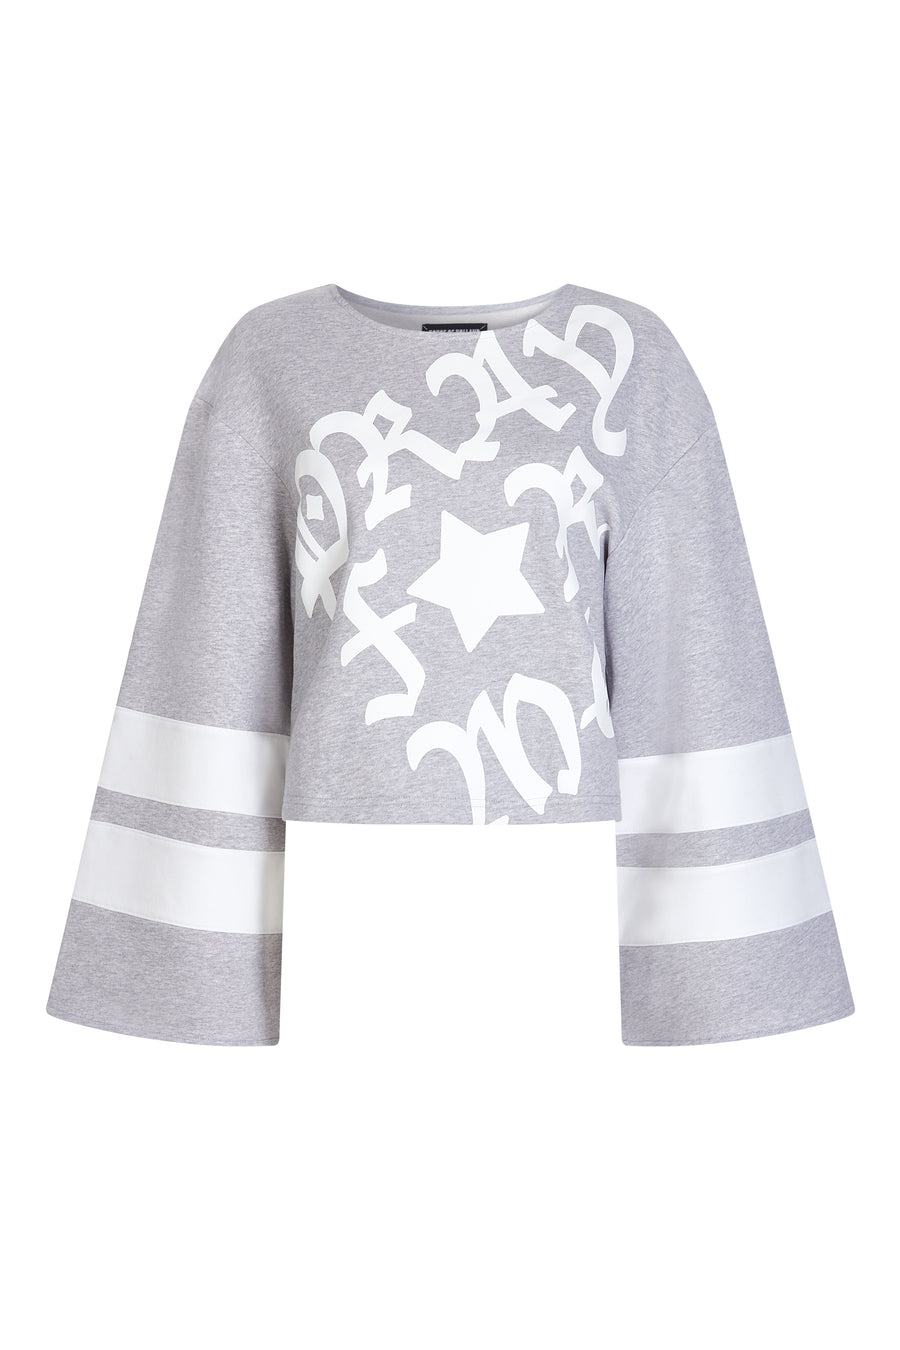 Grey 'Pray for Me' Cropped Sweatshirt by House of Holland